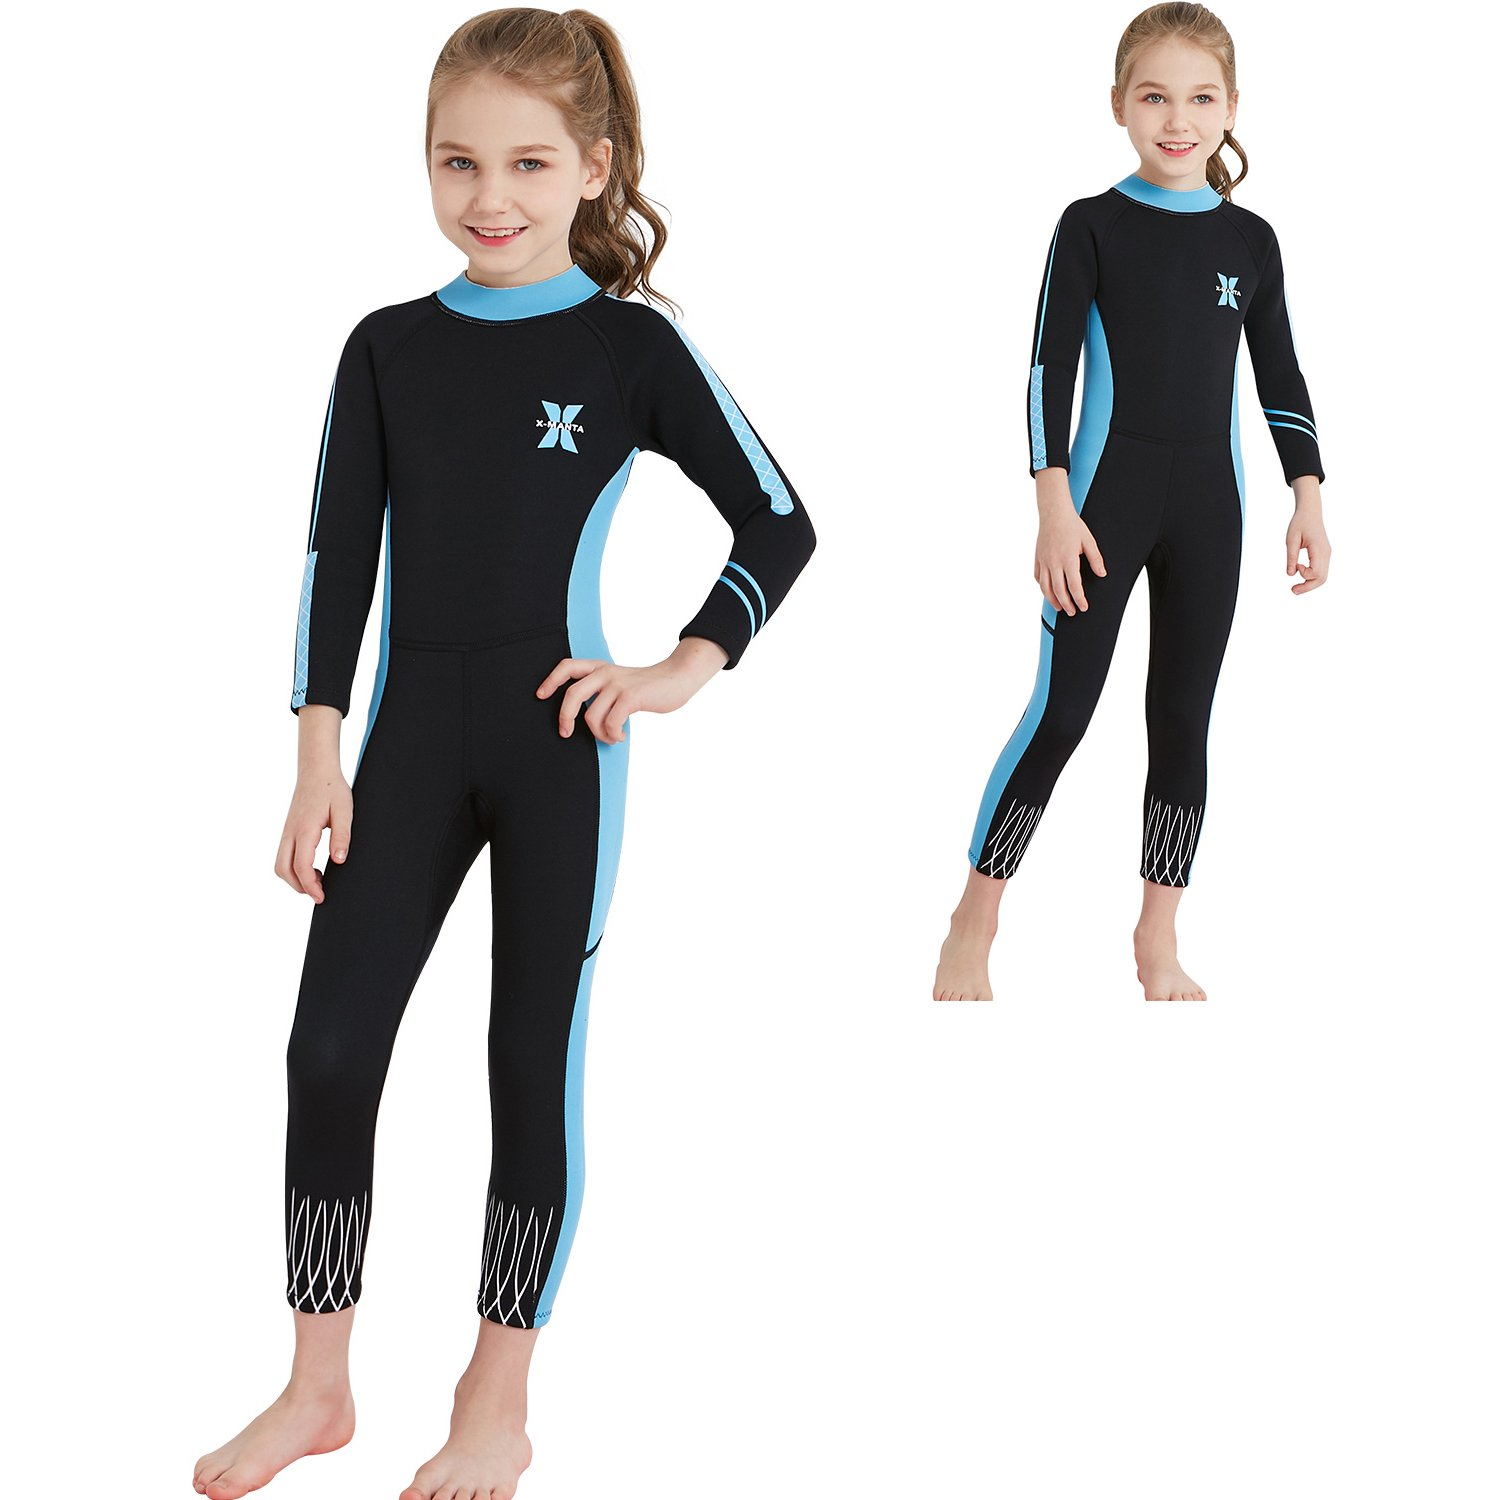 d2636d01c Amazon.com: Dyung Tec Kids Wetsuits 2.5MM Neoprene for Girls Keep Warm One  Piece Long Sleeves UV Protection Children Swimwear: Sports & Outdoors